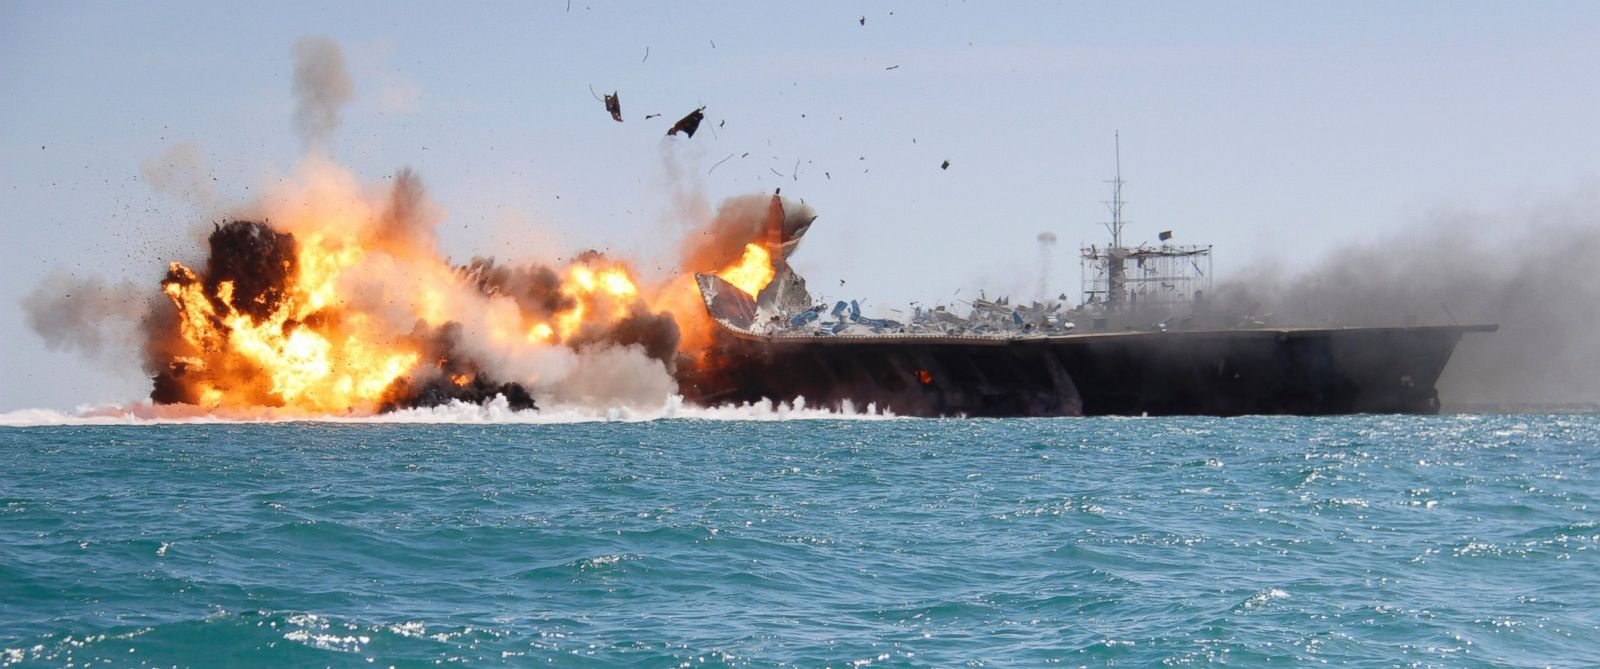 PHOTO: In this picture released by the Iranian Tasnim news agency, Feb. 25, 2015, shows a replica of a U.S. aircraft carrier exploded by the Revolutionary Guards speedboats during large-scale naval drills near the entrance of the Persian Gulf, Iran.